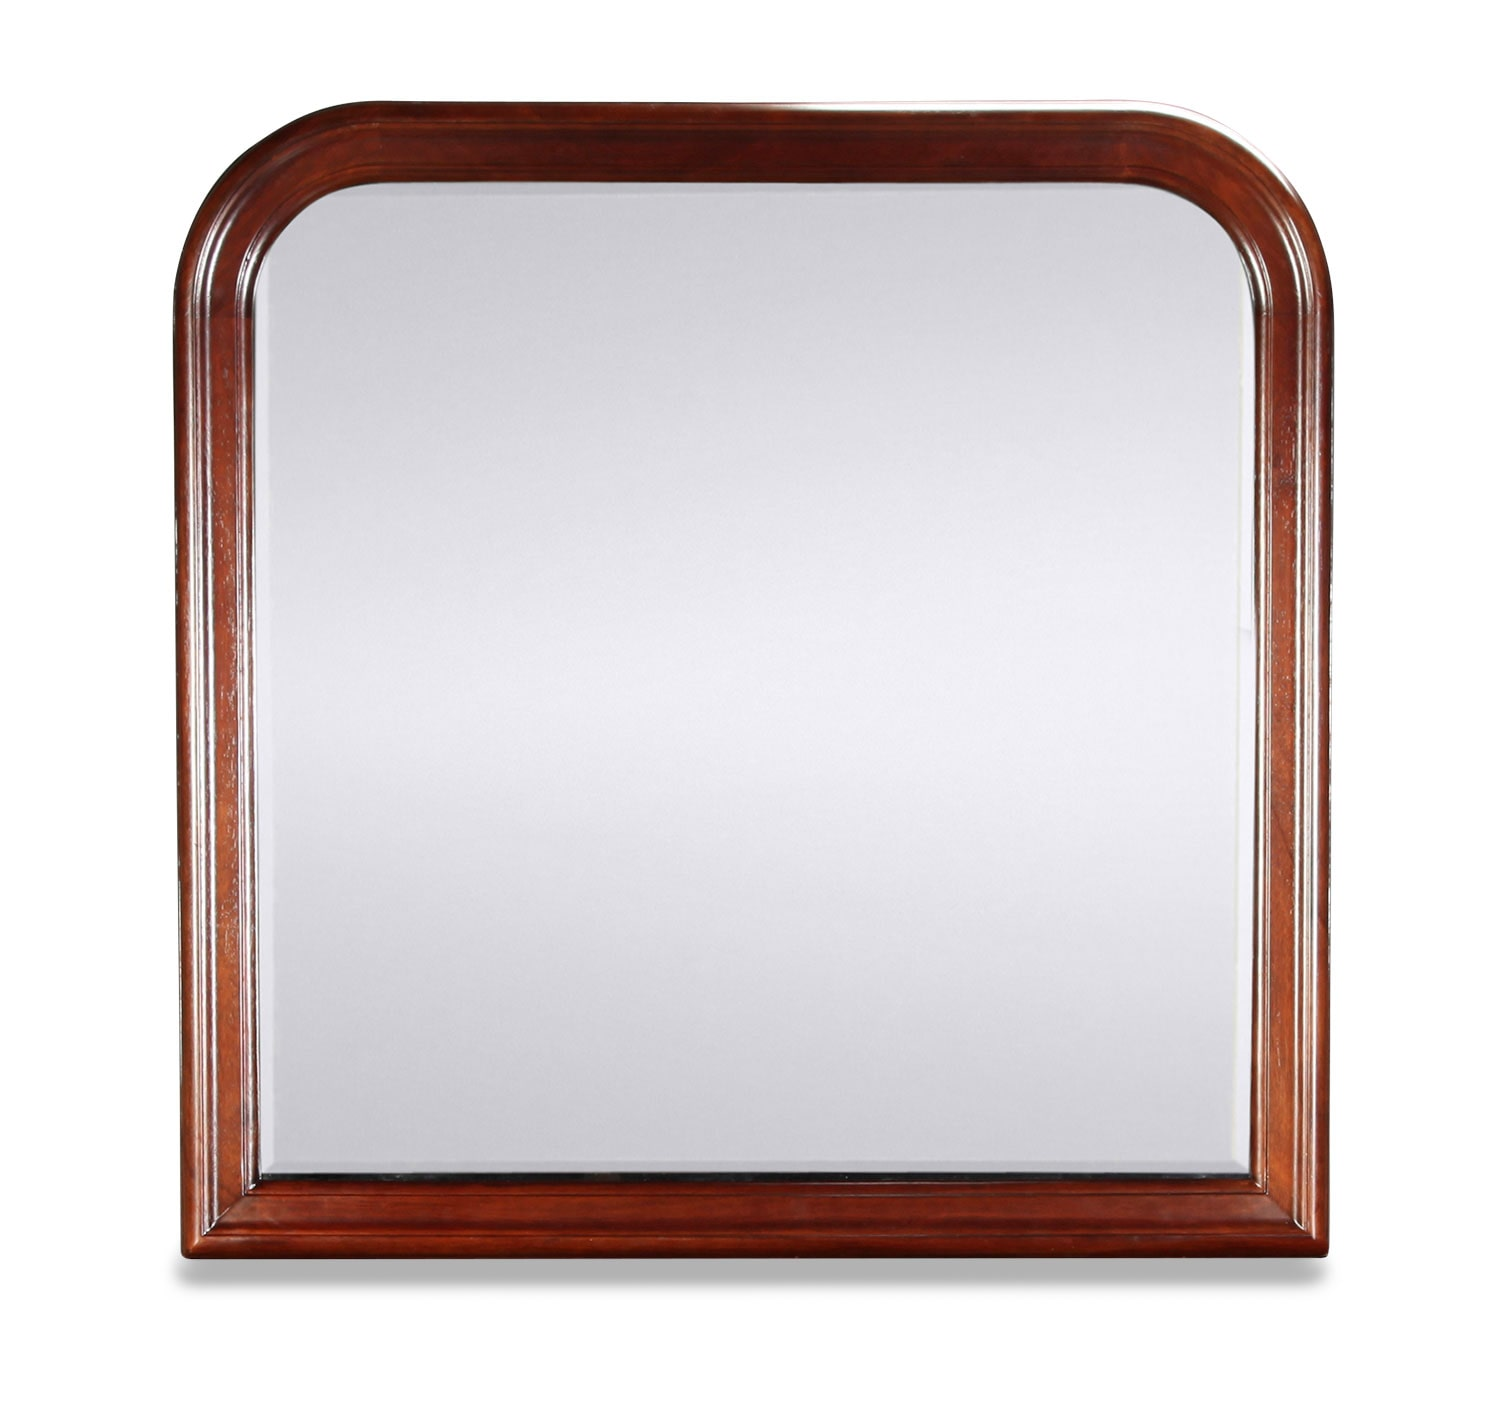 Claire Mirror - Brown Cherry